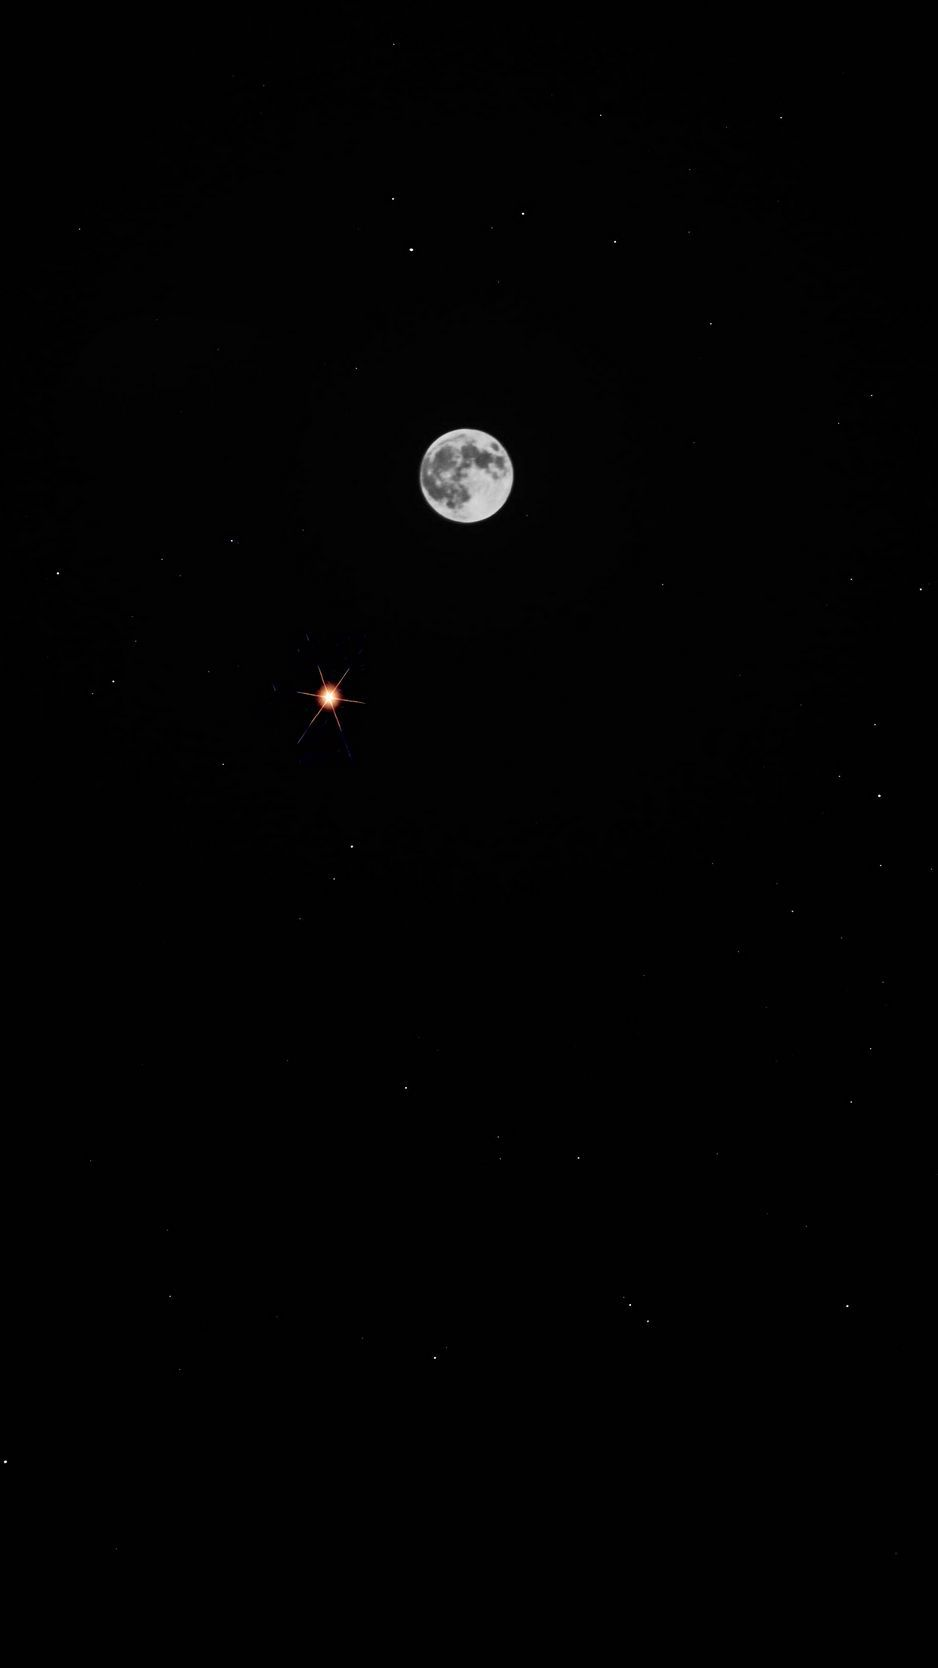 Moon And Stars Iphone Wallpapers Top Free Moon And Stars Iphone Backgrounds Wallpaperaccess